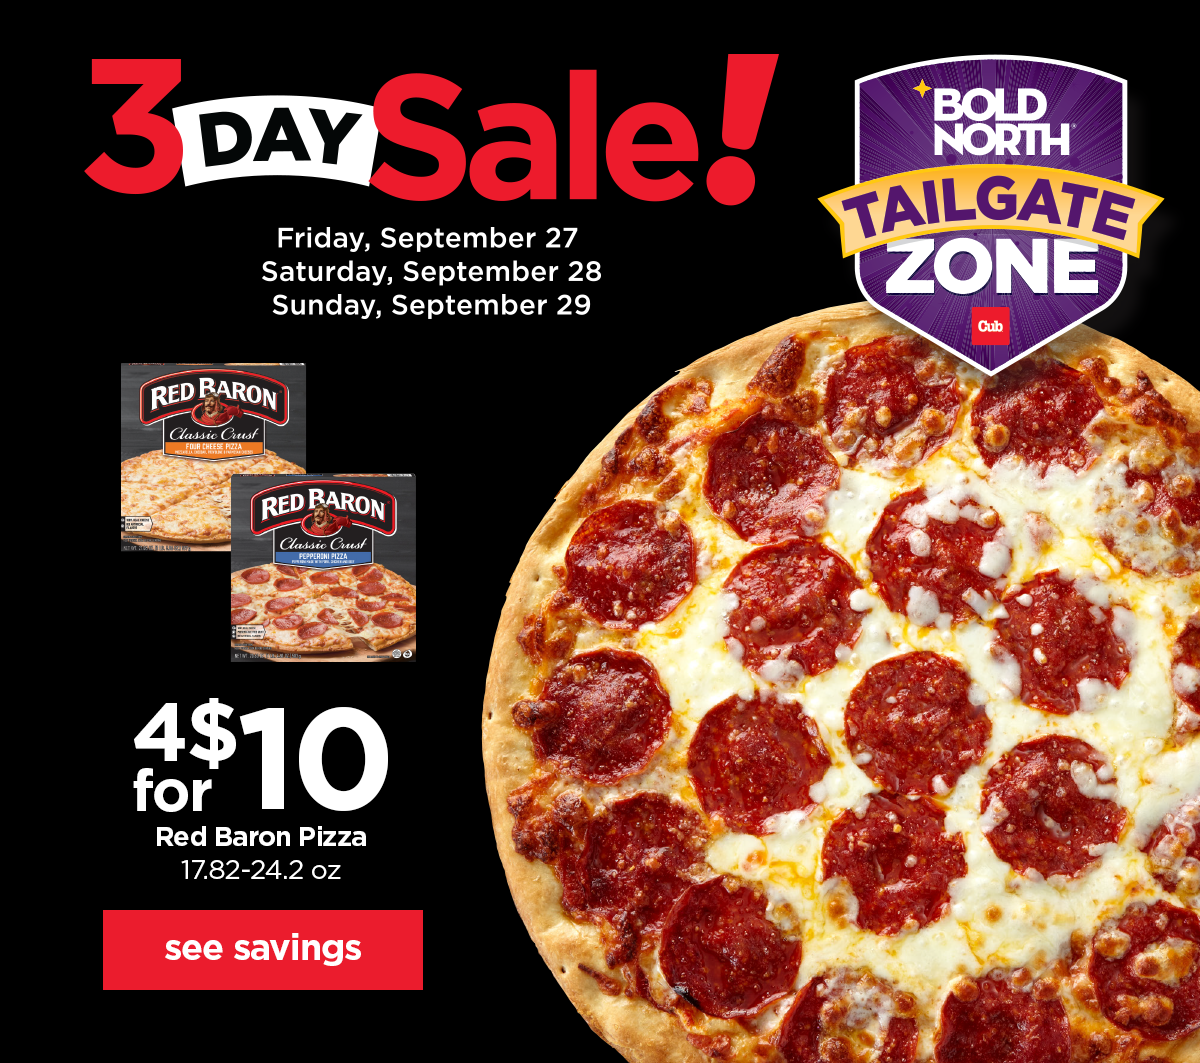 4 for $10 Red Baron Pizza, 17.82-24.2 ounces. 3-day Sale Friday, September 27 through Sunday, September 29. See savings